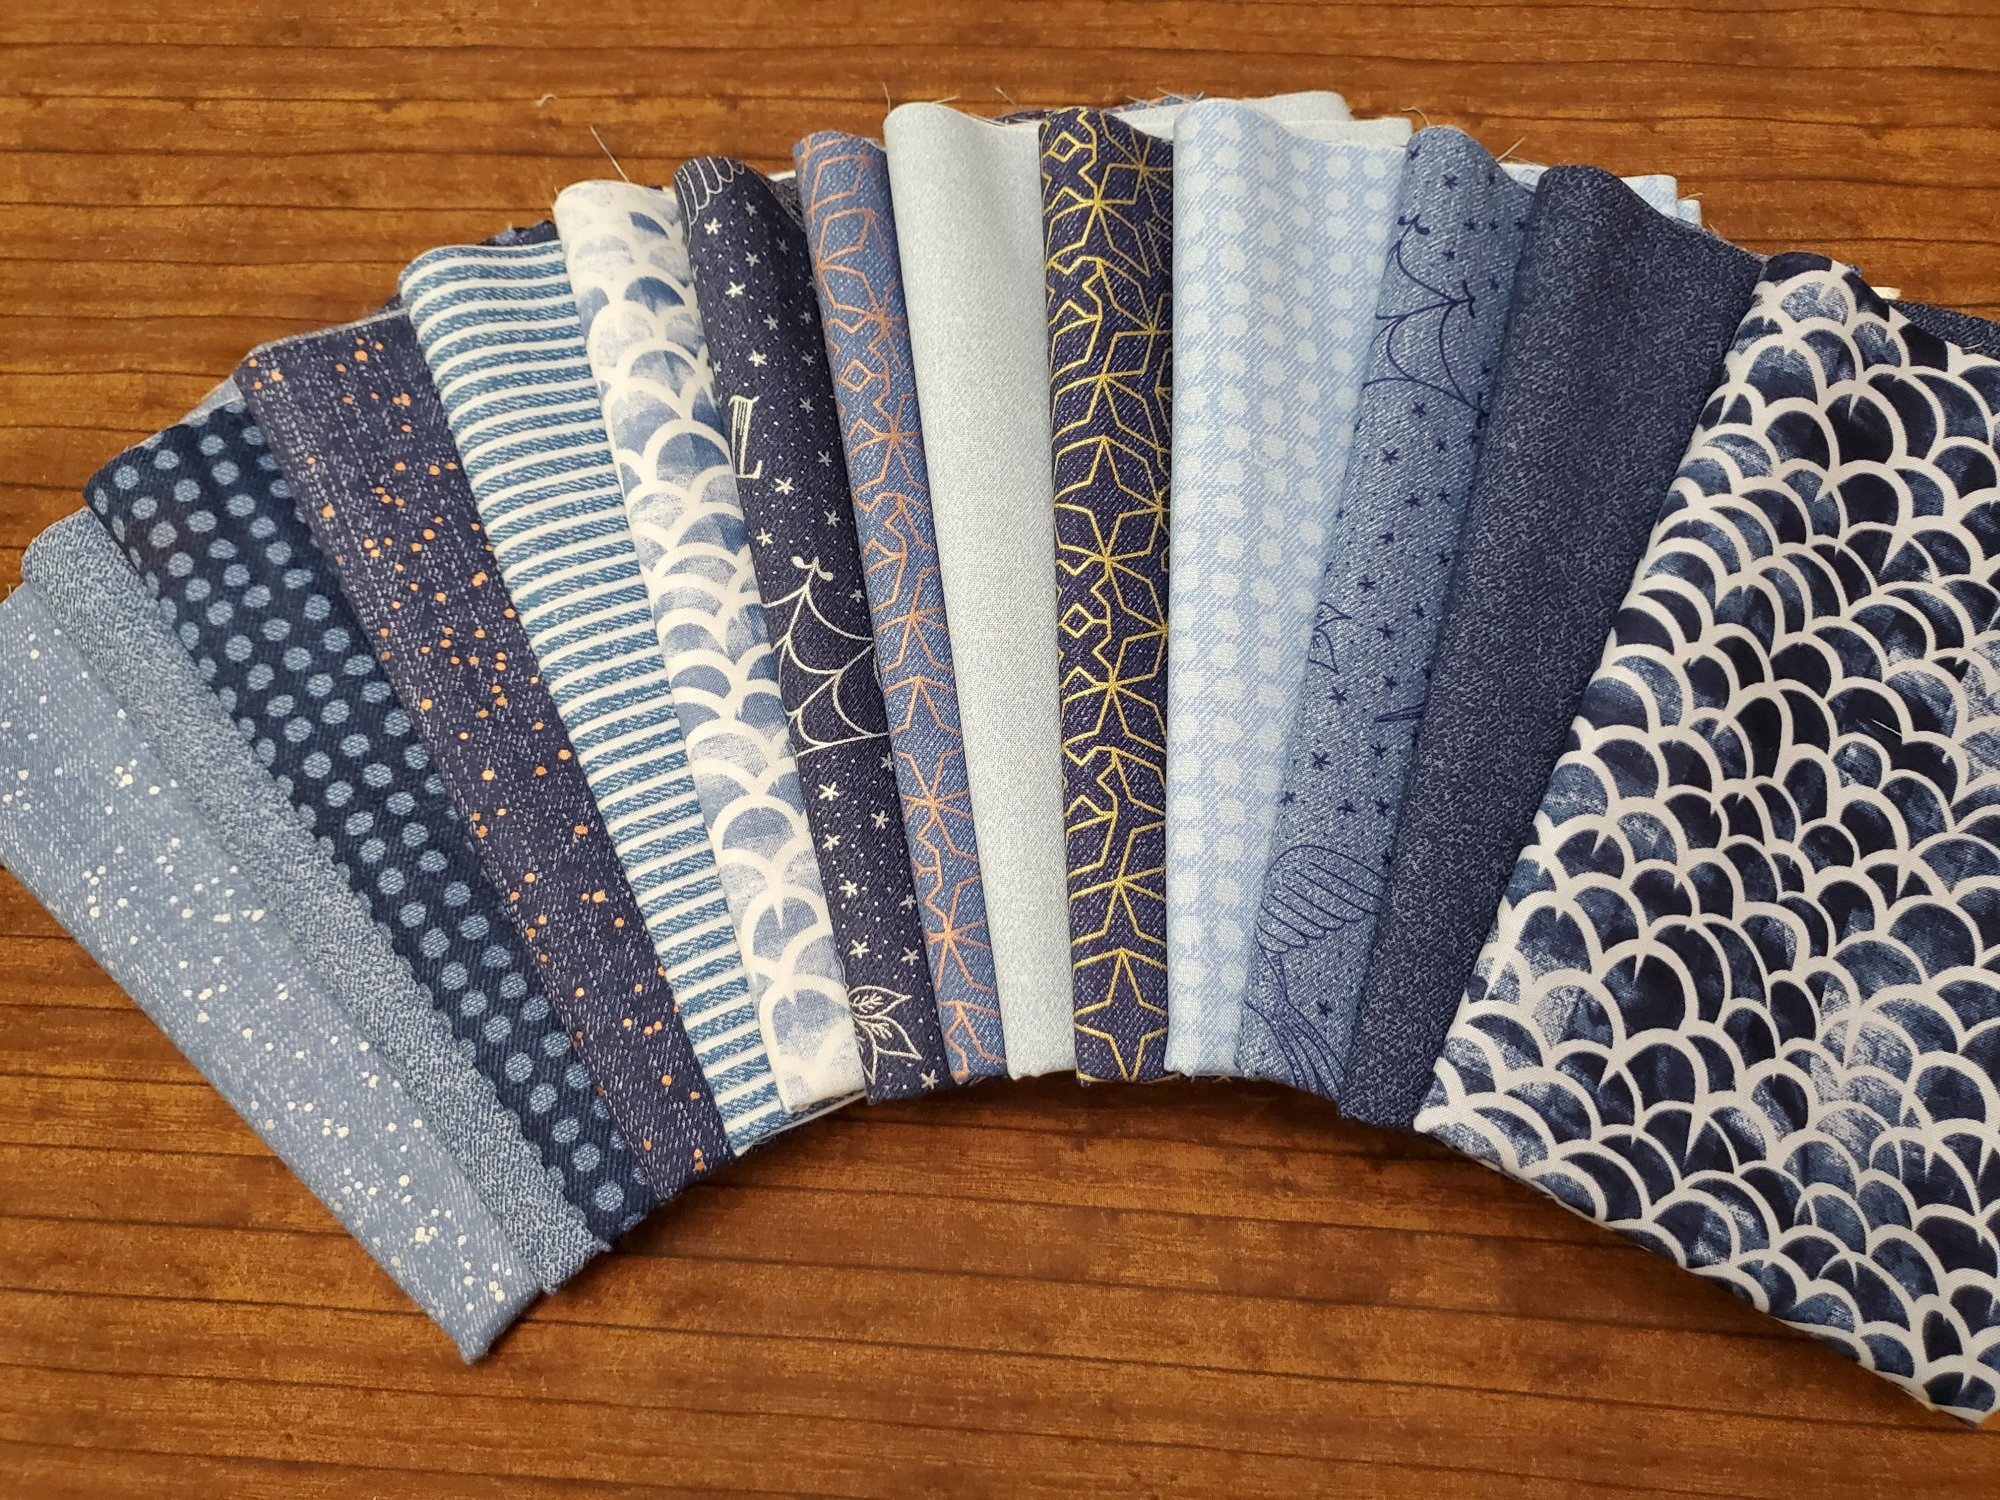 Almost Blue in Shades of Blue by Libs Elliot by Andover- 14 Piece Half Yard Bundle Pack